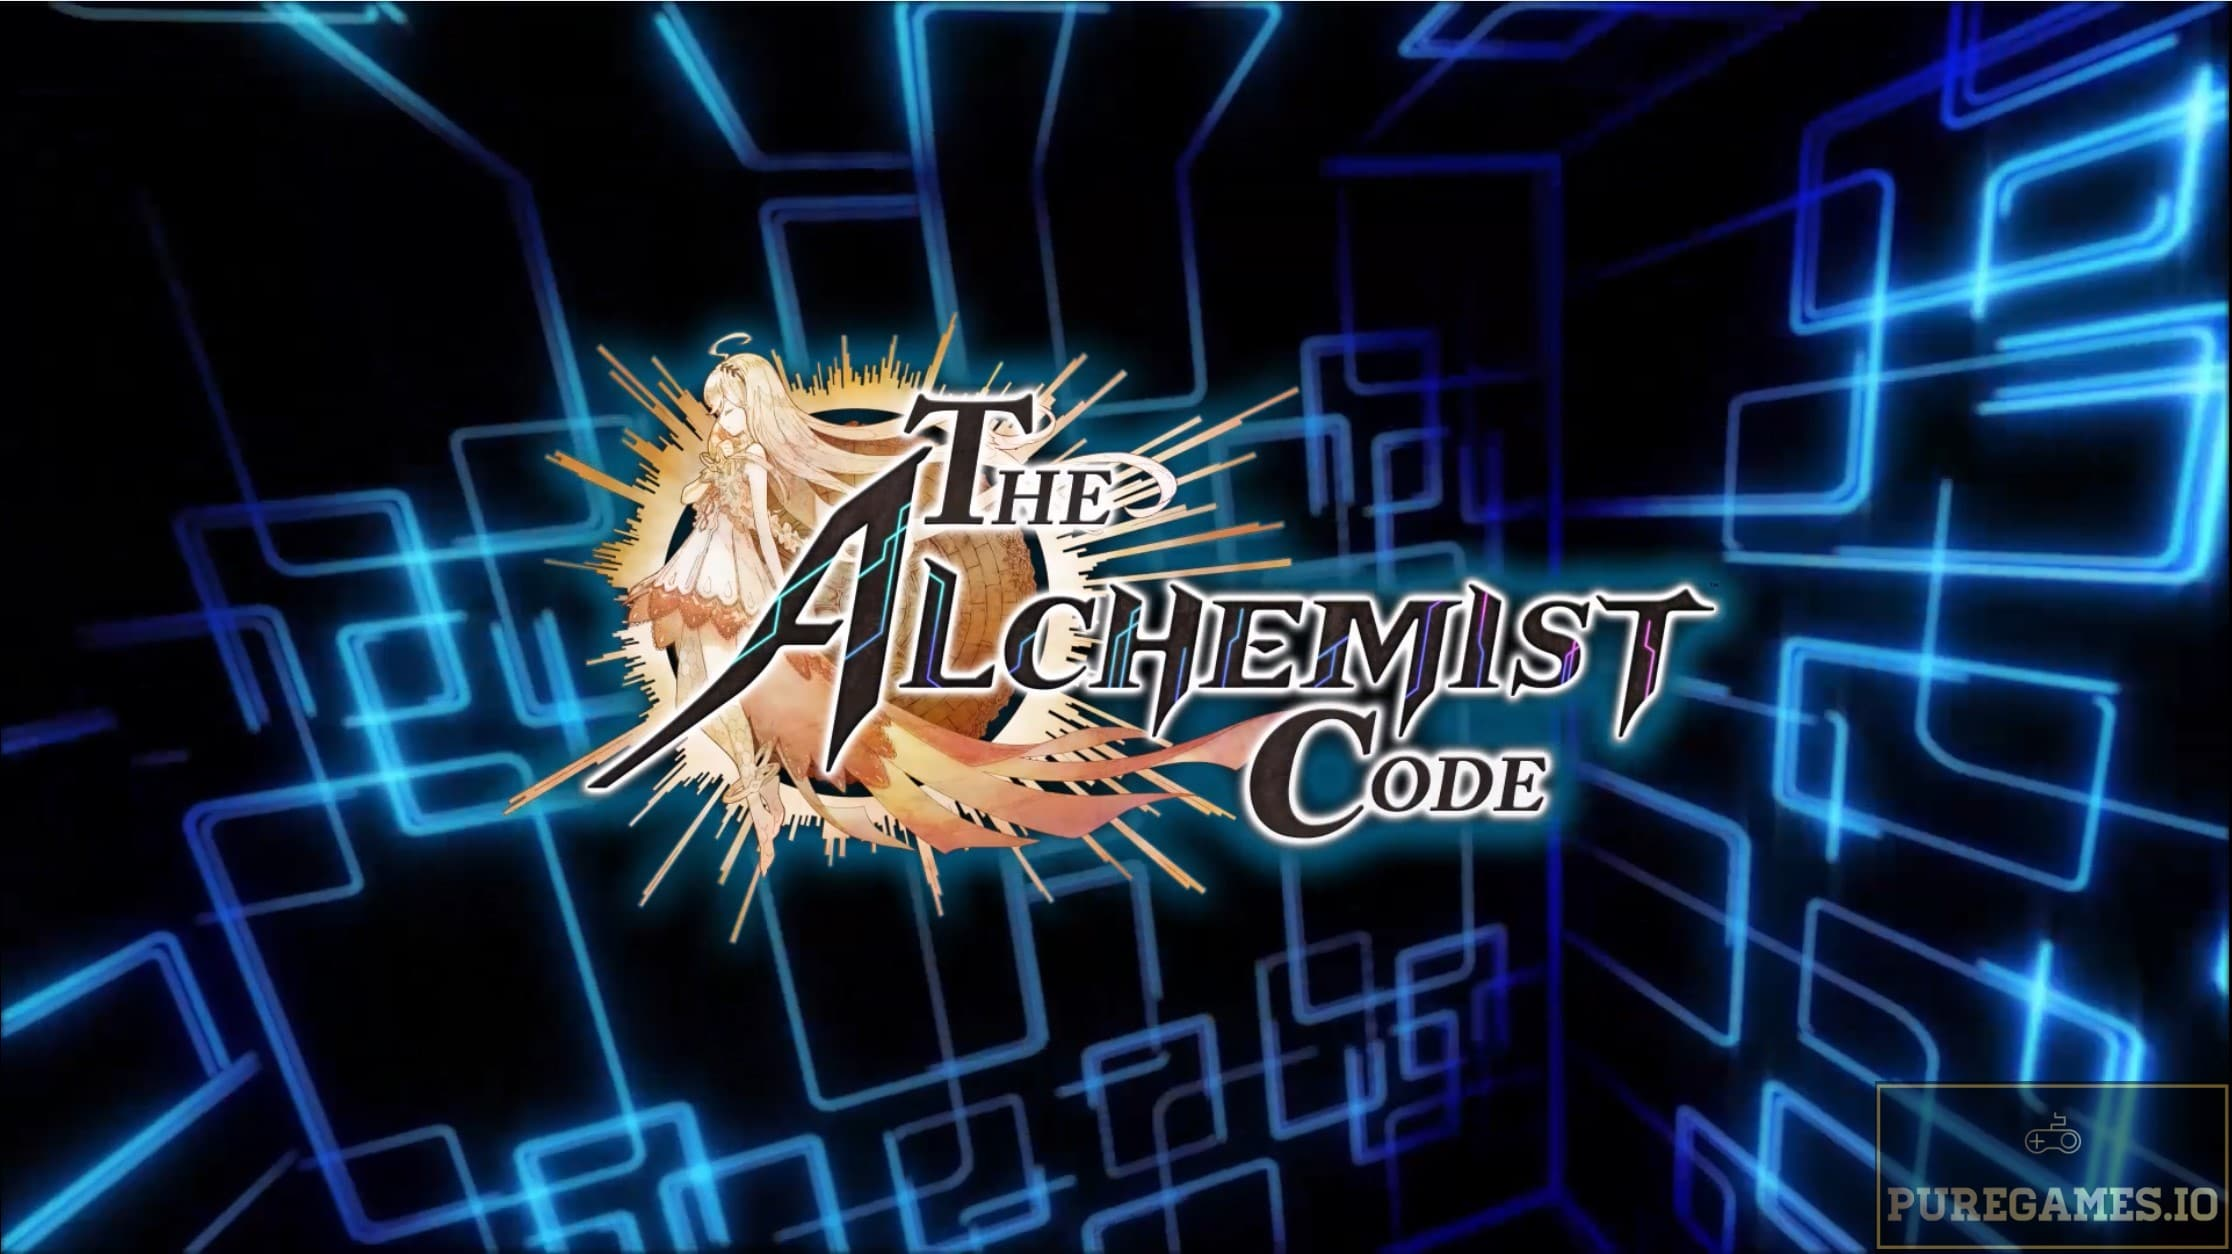 Download The Alchemist Code APK for Android/iOS 8